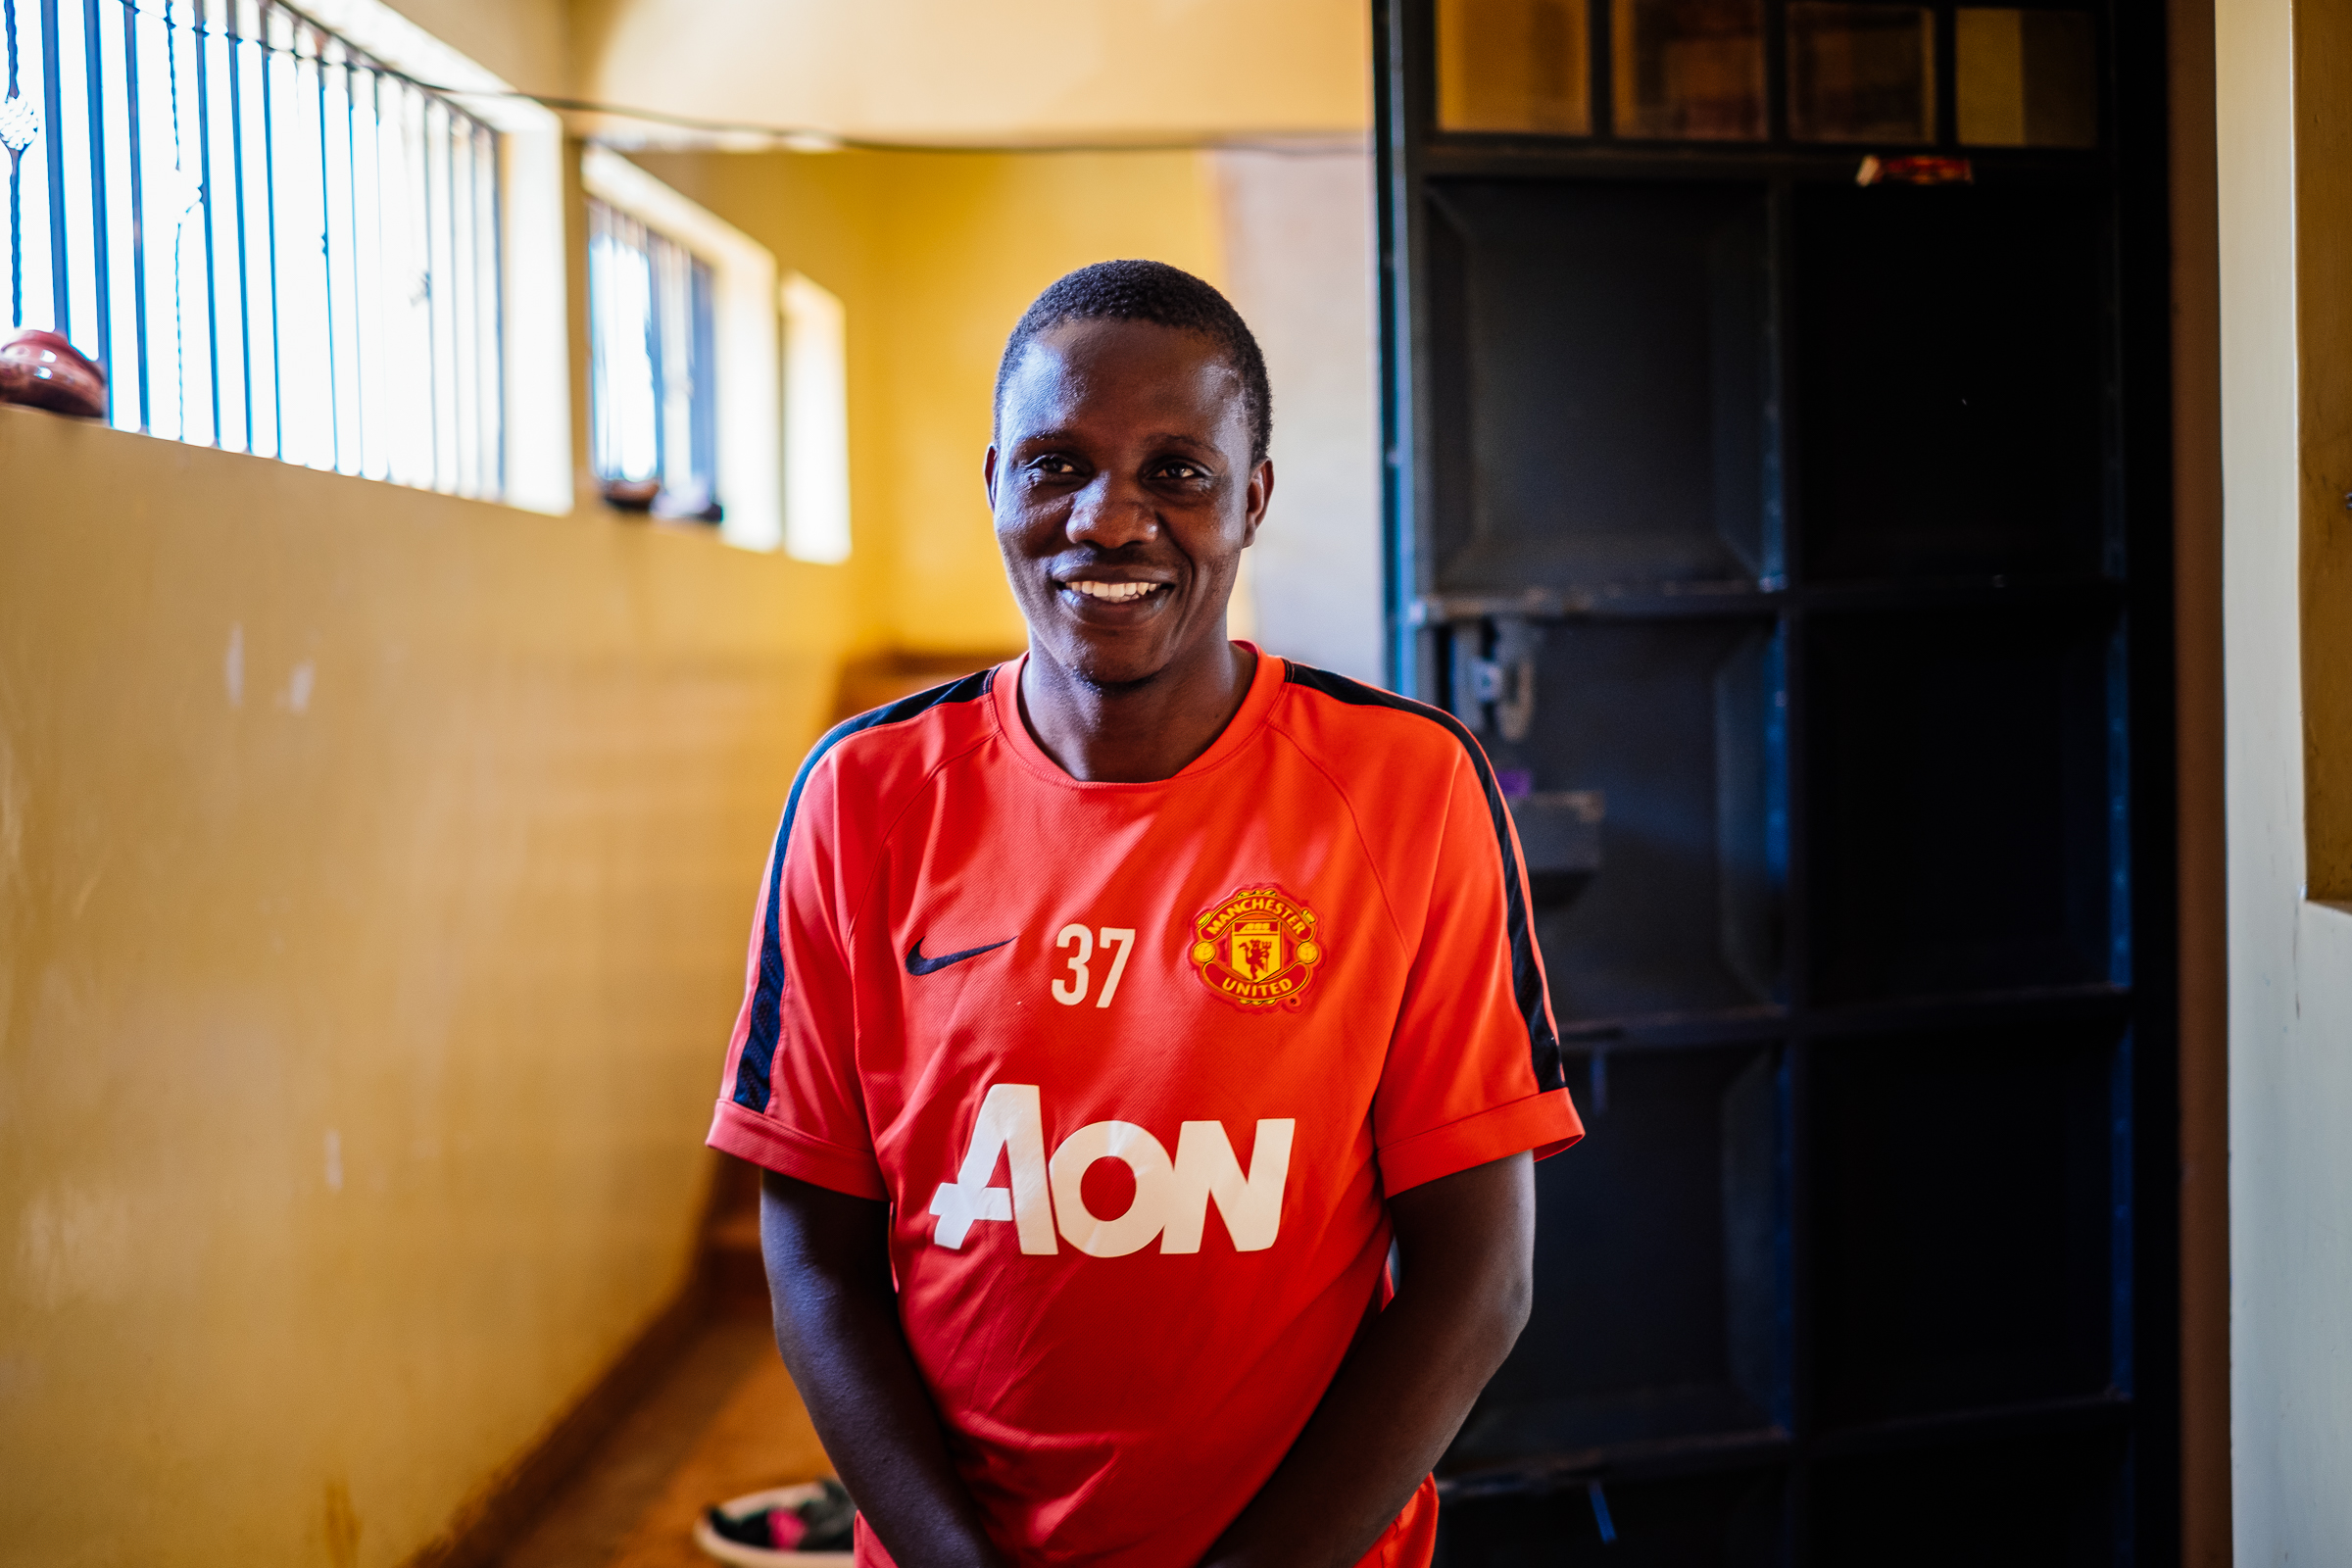 We interviewed Mufid, who is often taking antibiotics and lives near Kibura, a low-income area. Check out the learnings here.